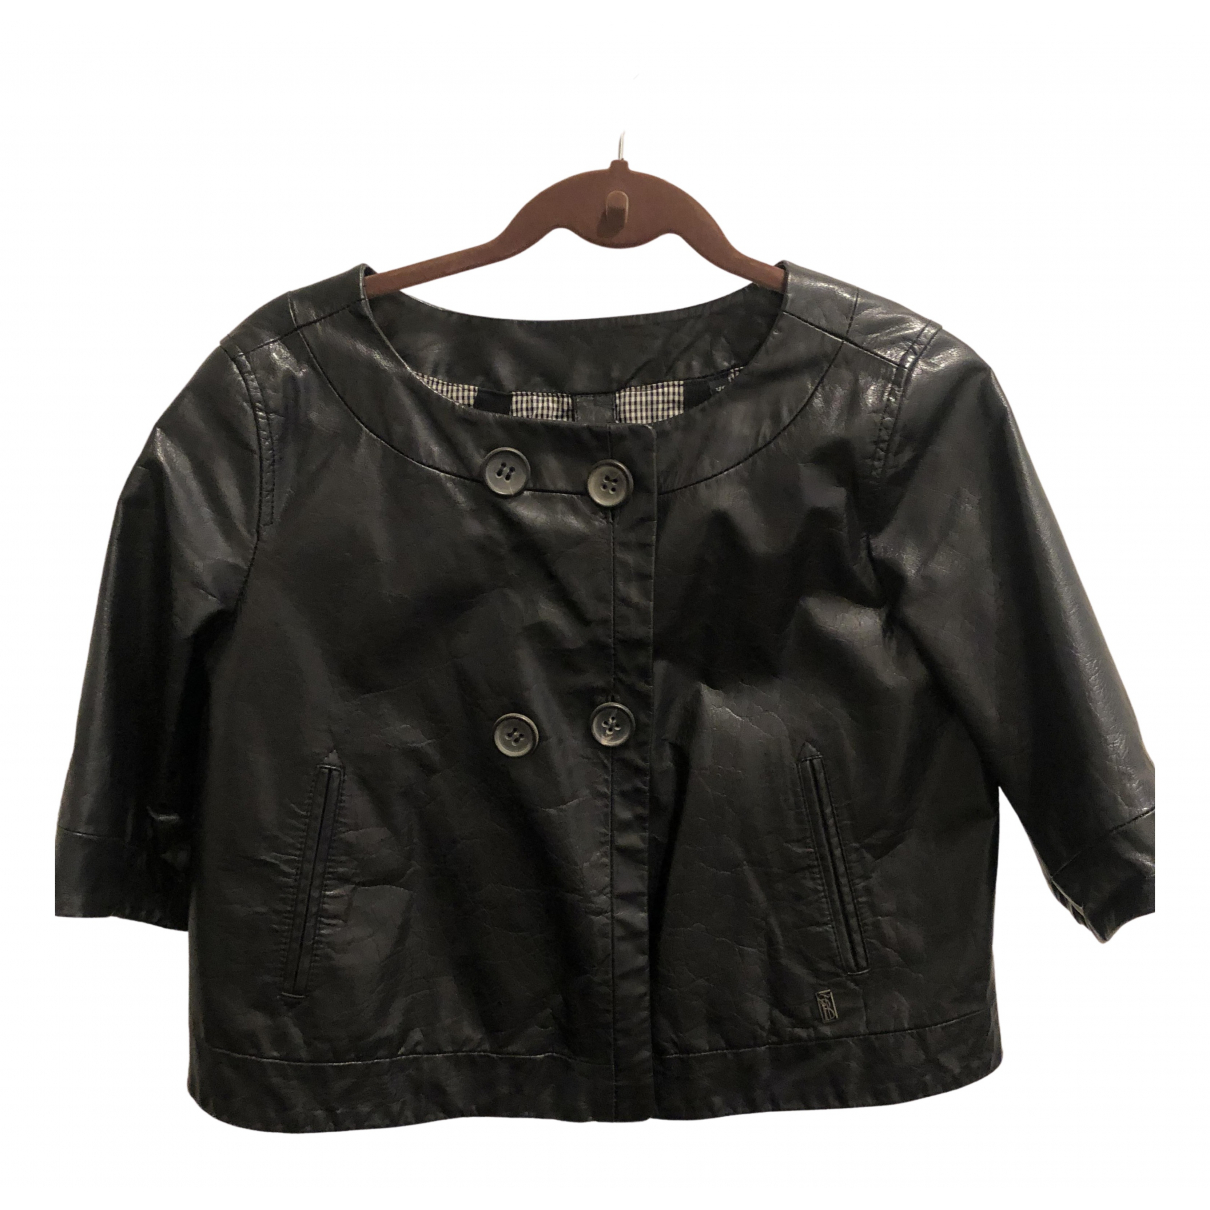 Burberry N Black Leather jacket for Women XS International